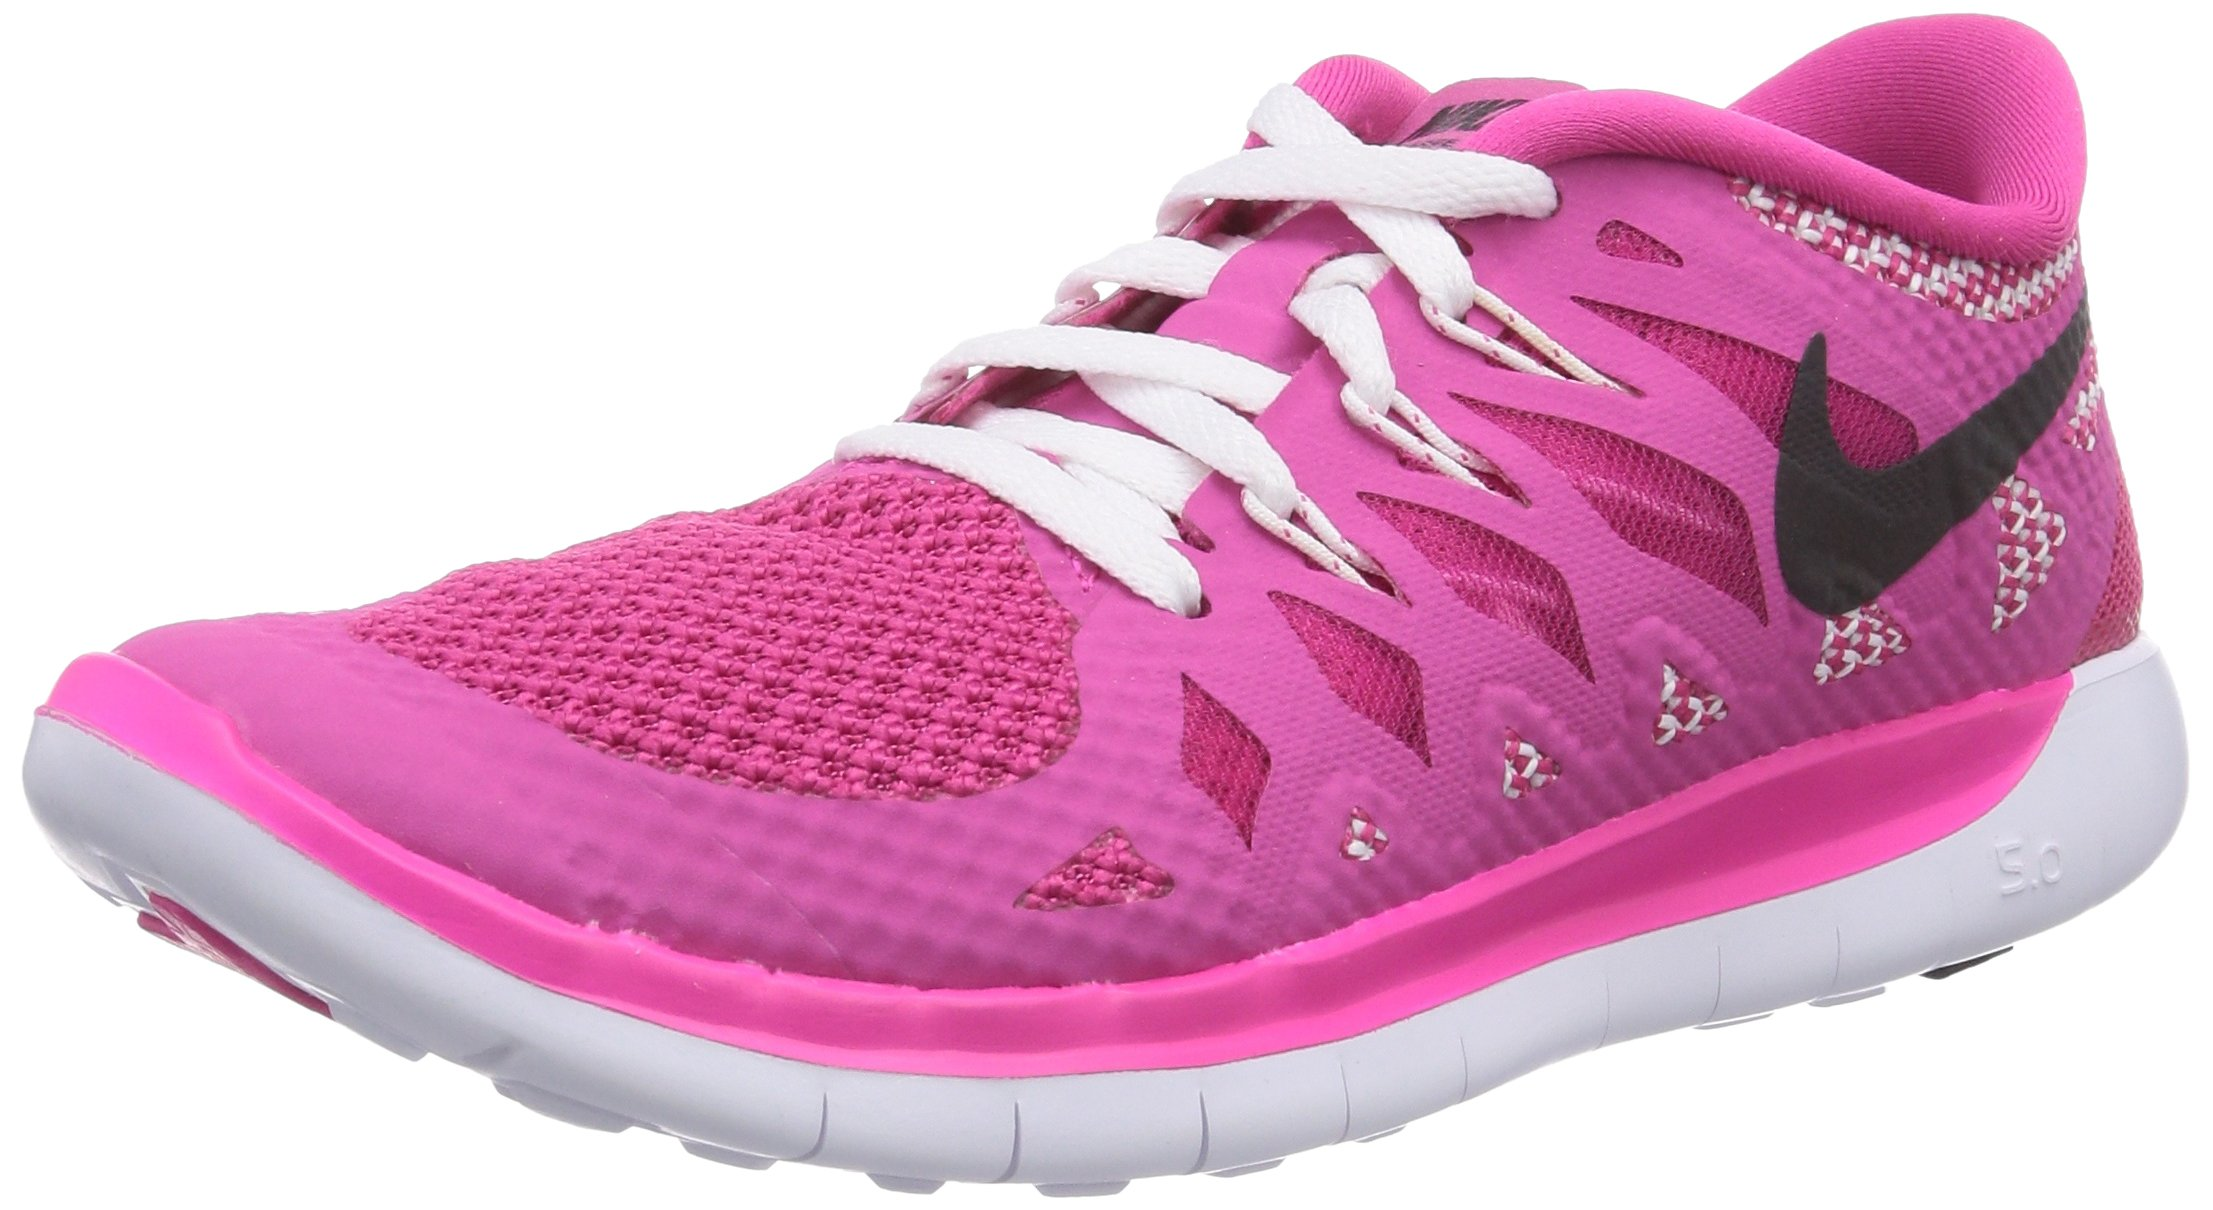 reputable site 8fc88 38476 NIKE Free 5.0 (GS) Girls Running Shoes 644446-602 Hot Pink White-Black 5  Big Kid M